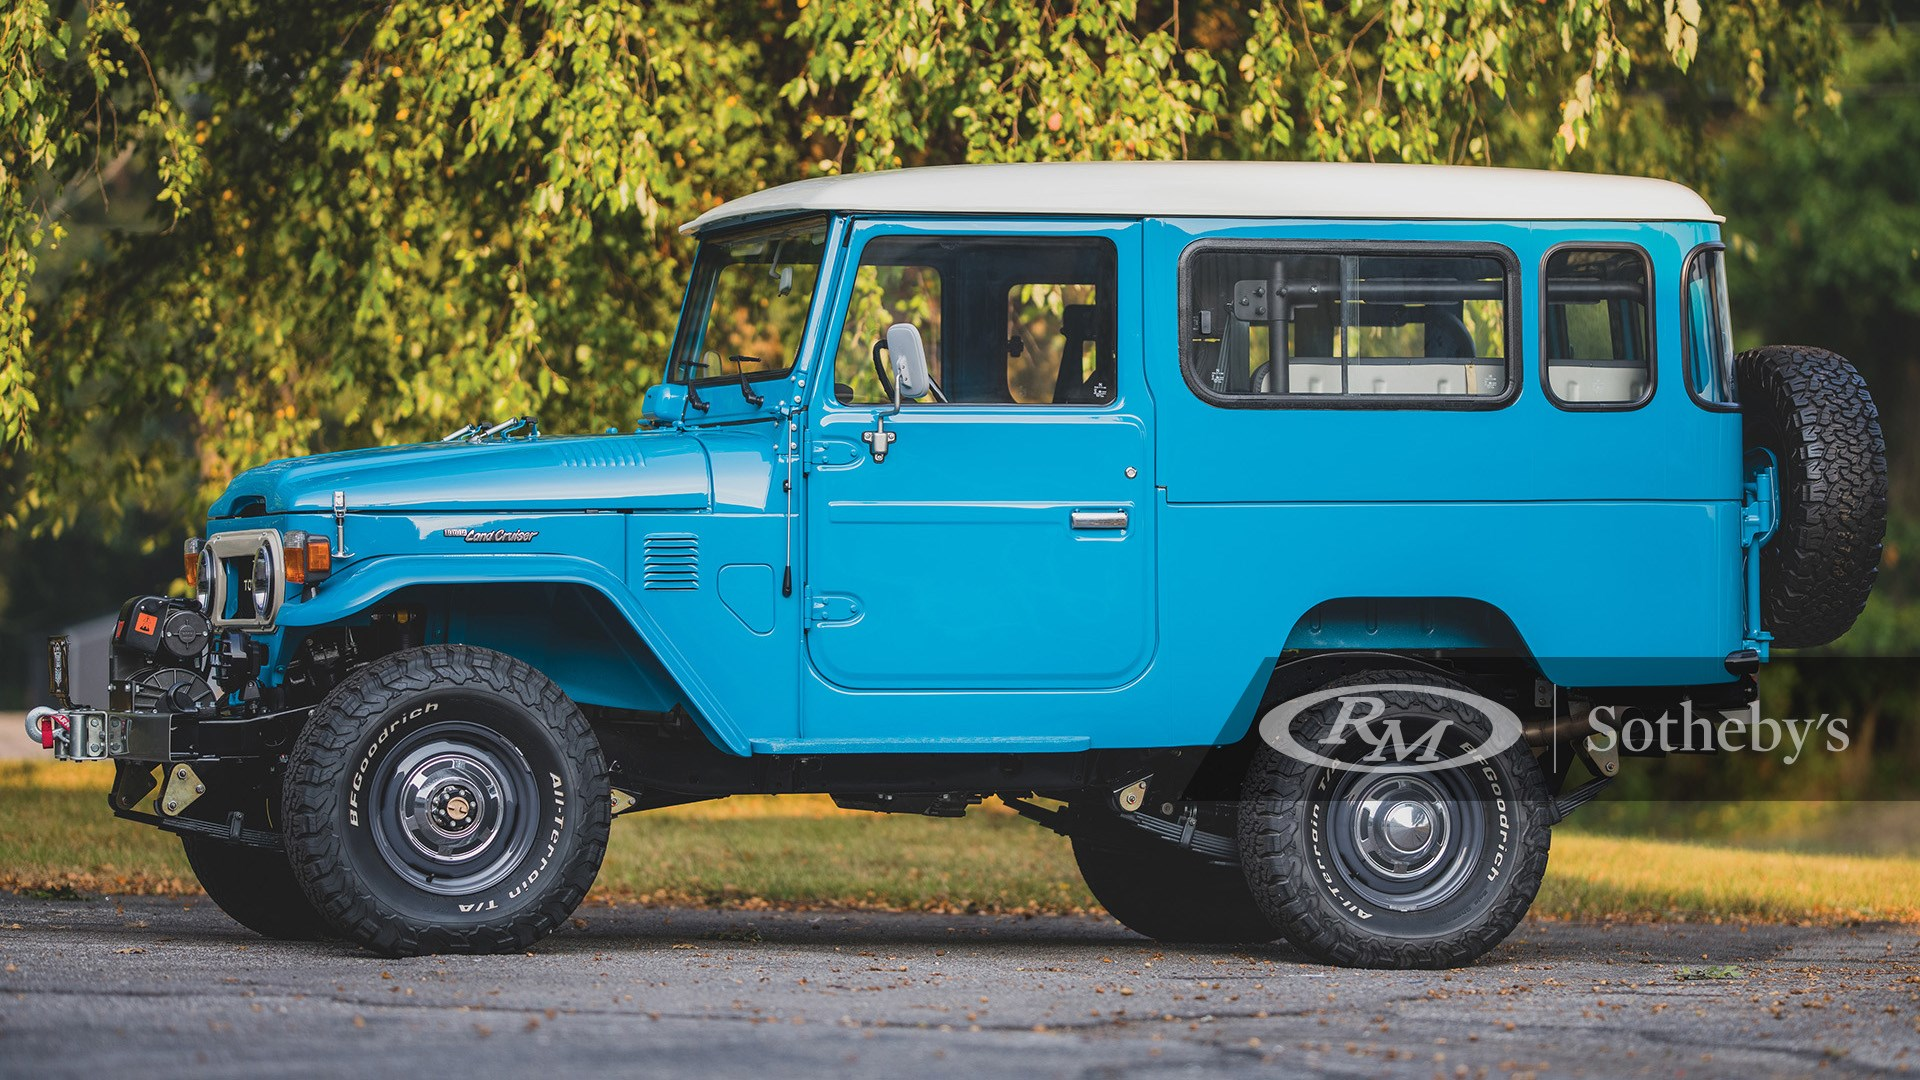 RM Sotheby's The Elkhart Collection 2020, Blog, 1981 Toyota FJ43 Land Cruiser